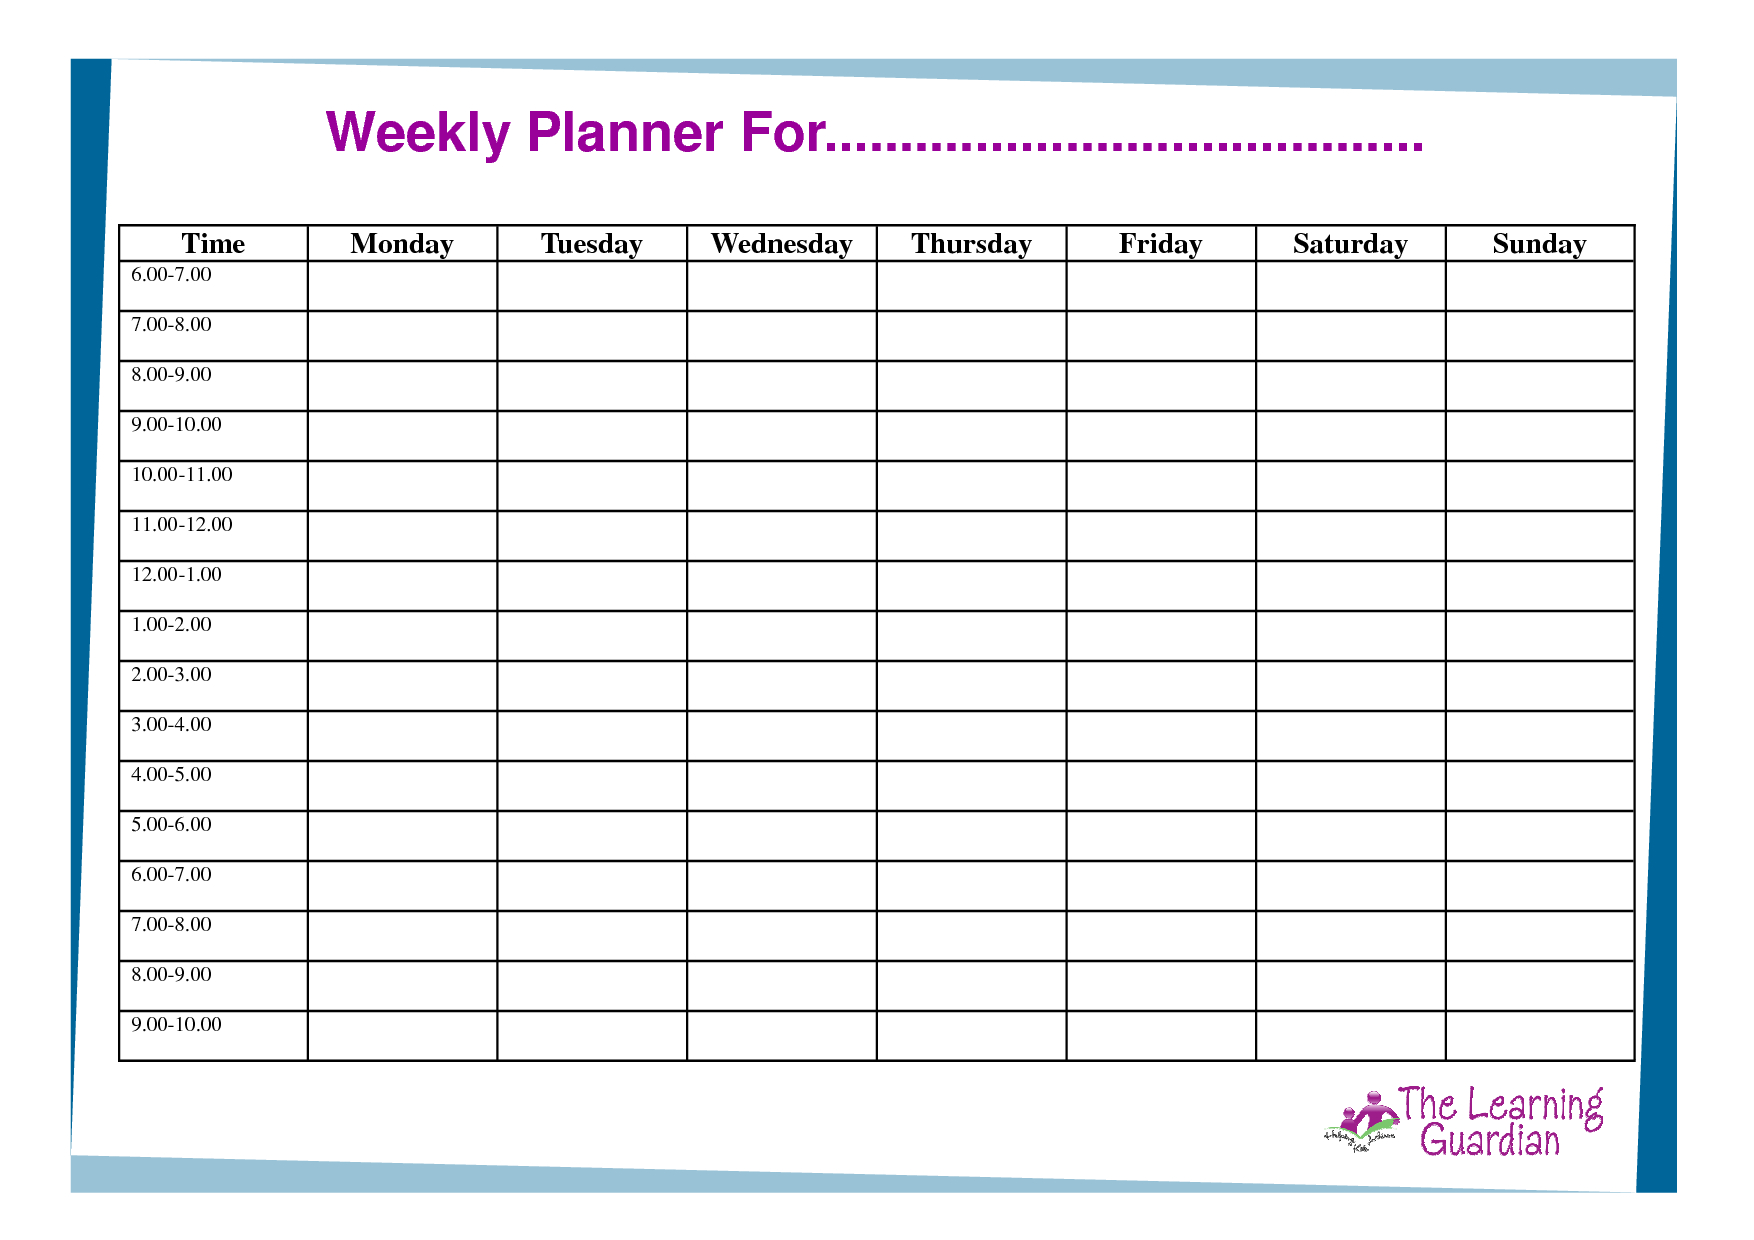 Free+Printable+Weekly+Planner+Templates In 2020 (With Images Free Printable Weekly Planner Monday Friday